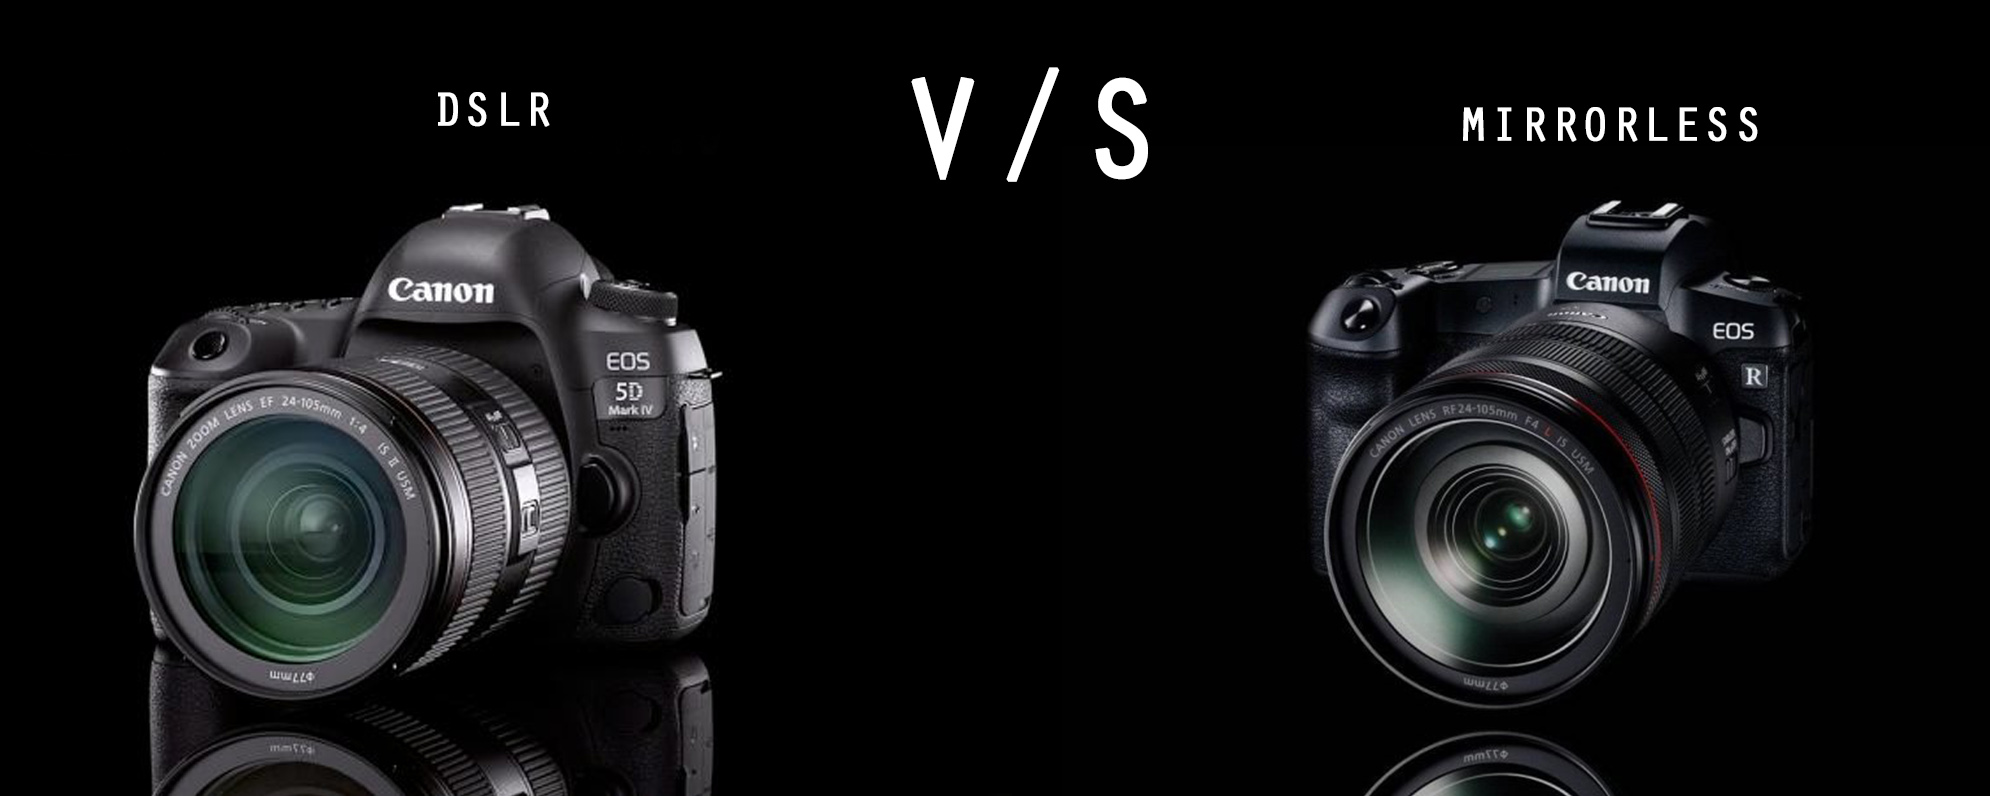 DSLR or Mirrorless Camera, which one is best ?